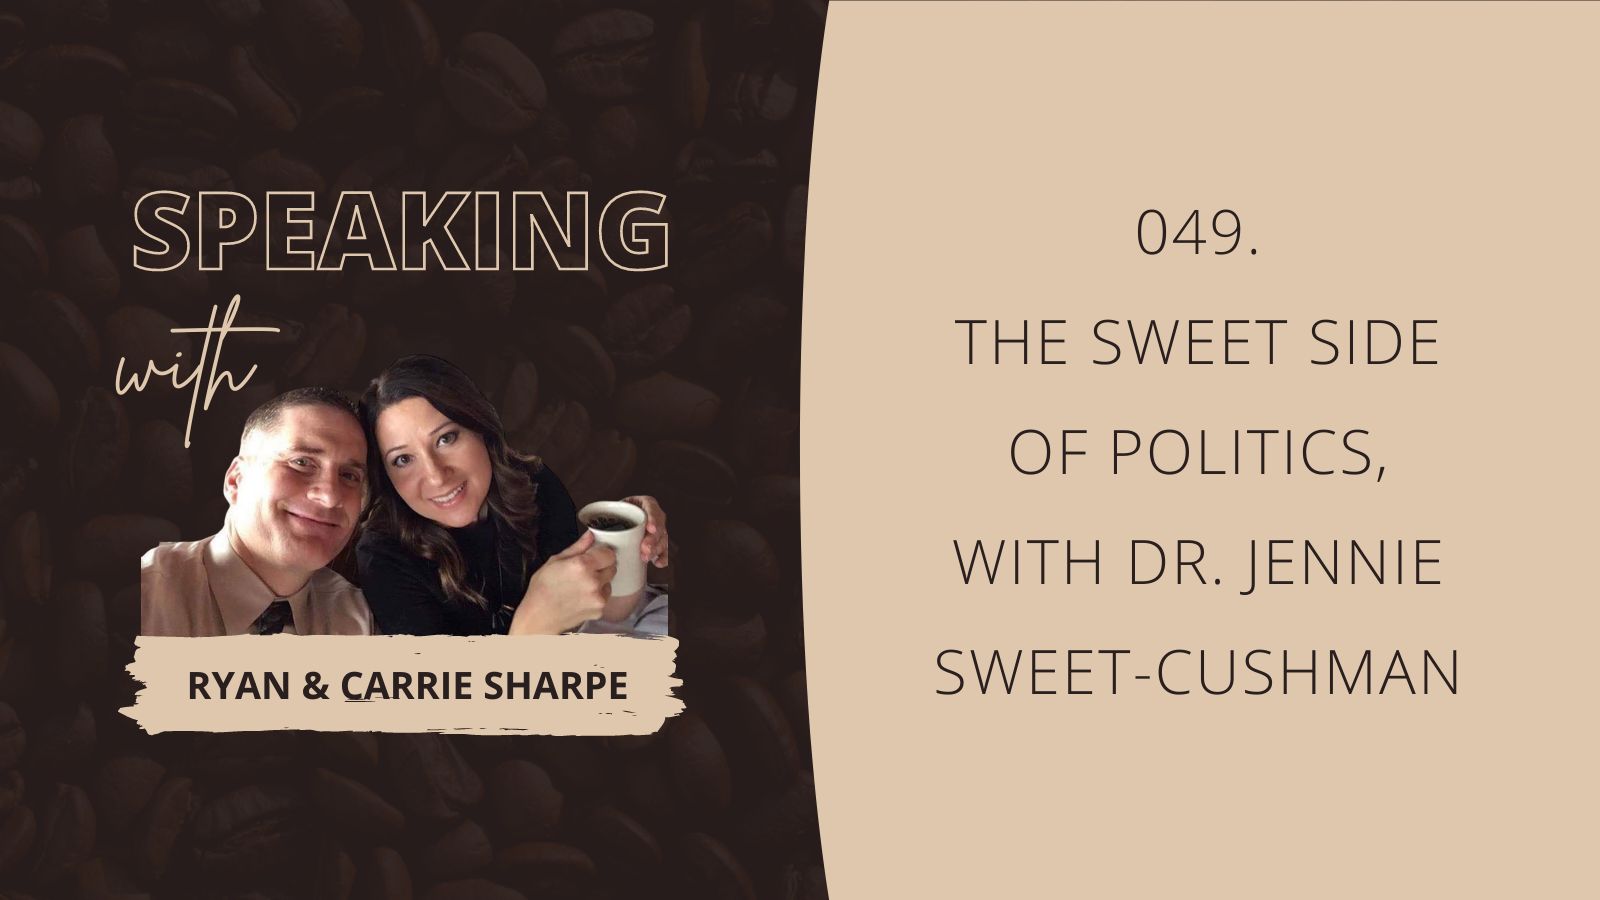 049. The Sweet Side Of Politics, with Dr. Jennie Sweet-Cushman [COMMUNICATION FOUNDATION SERIES] | Speaking with Ryan & Carrie Sharpe podcast